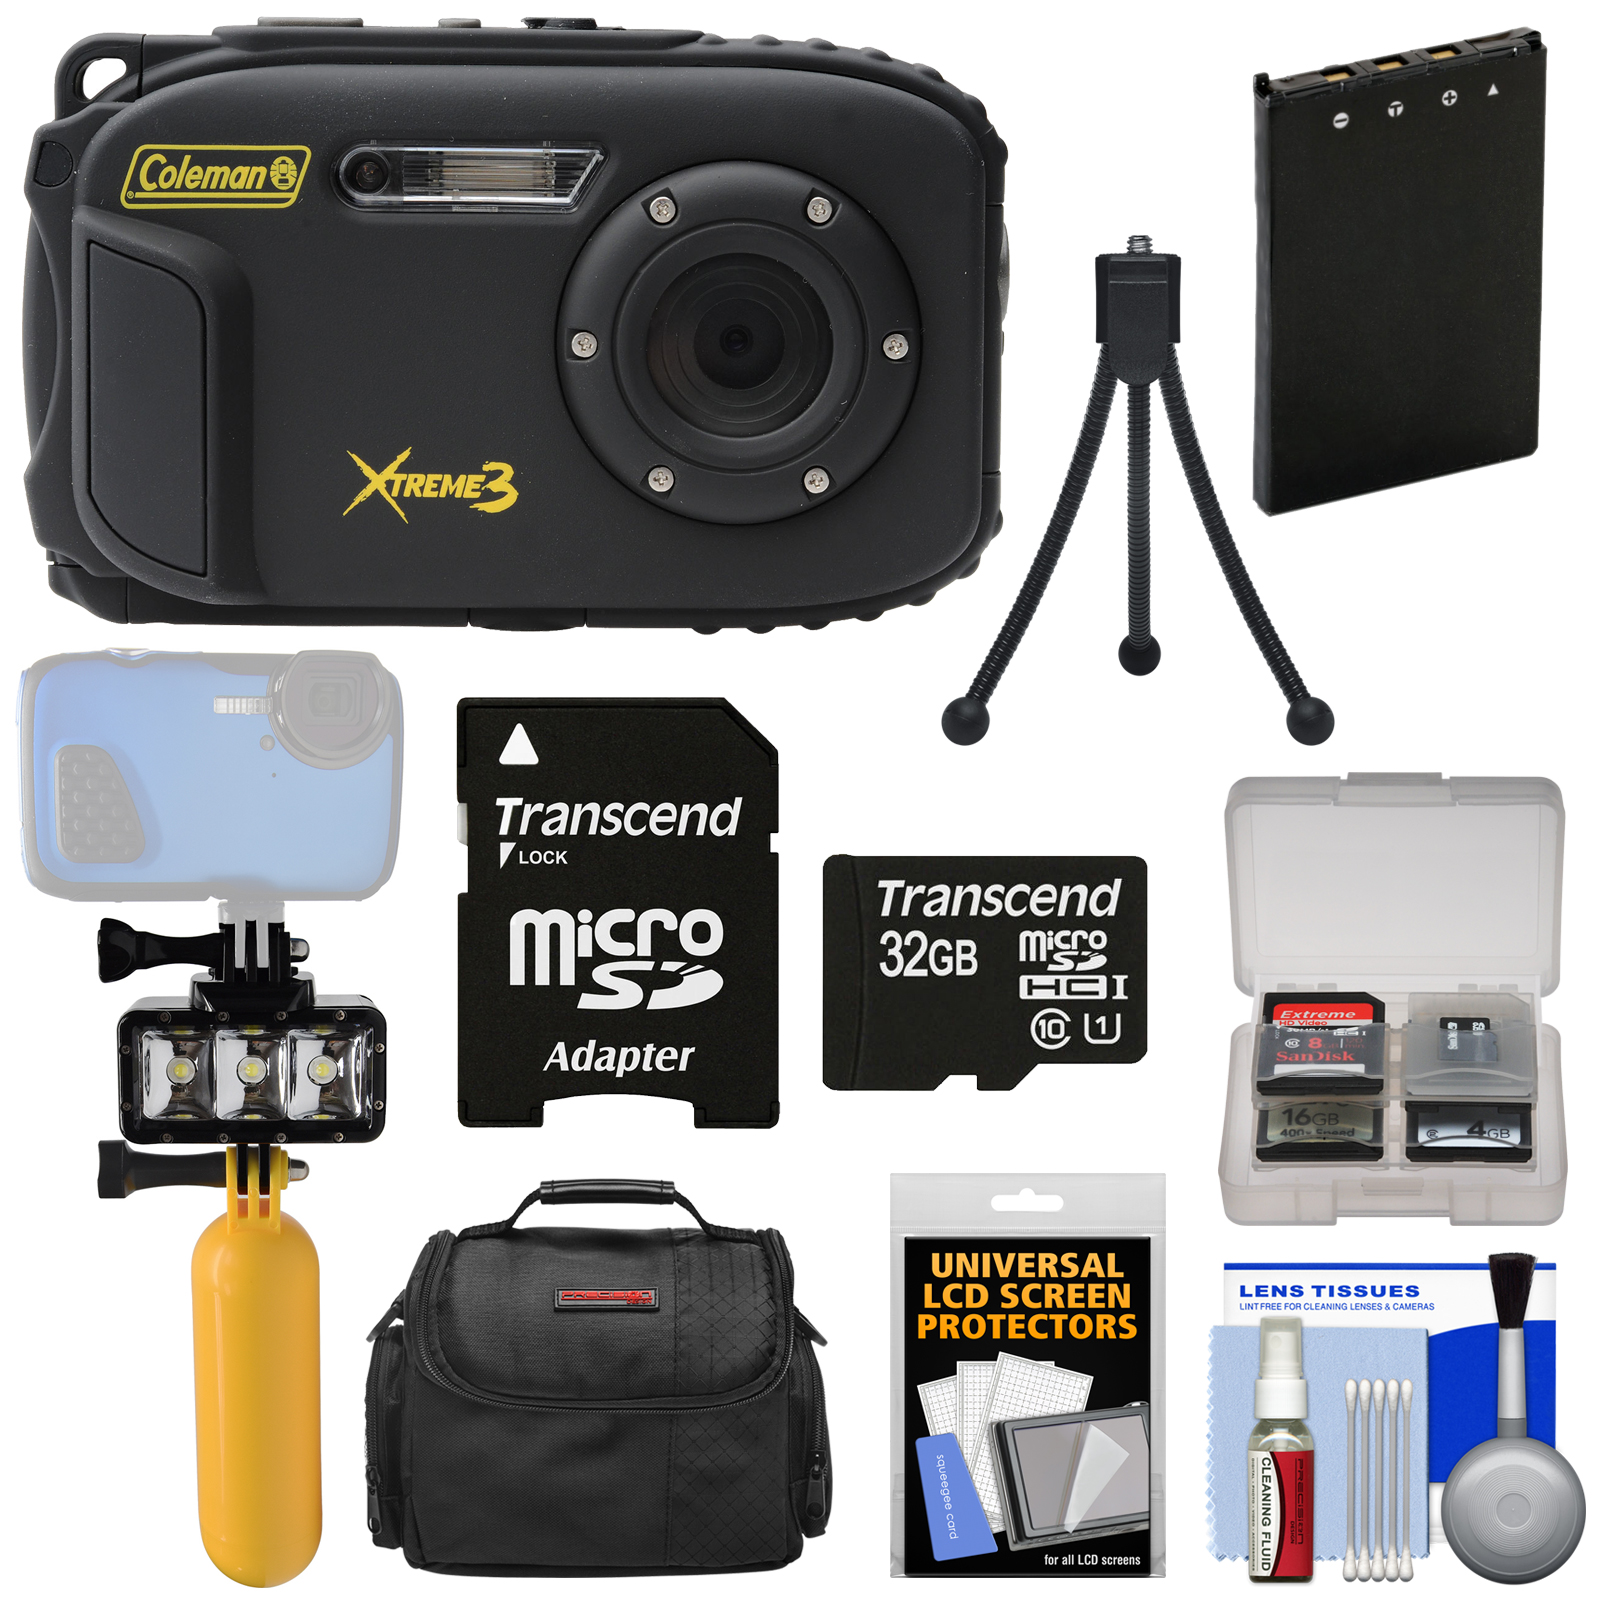 Coleman Xtreme3 C9WP Shock & Waterproof 1080p HD Digital Camera (Yellow) with 32GB Card + Battery + Diving LED Video Light + Buoy Handle + Case Kit